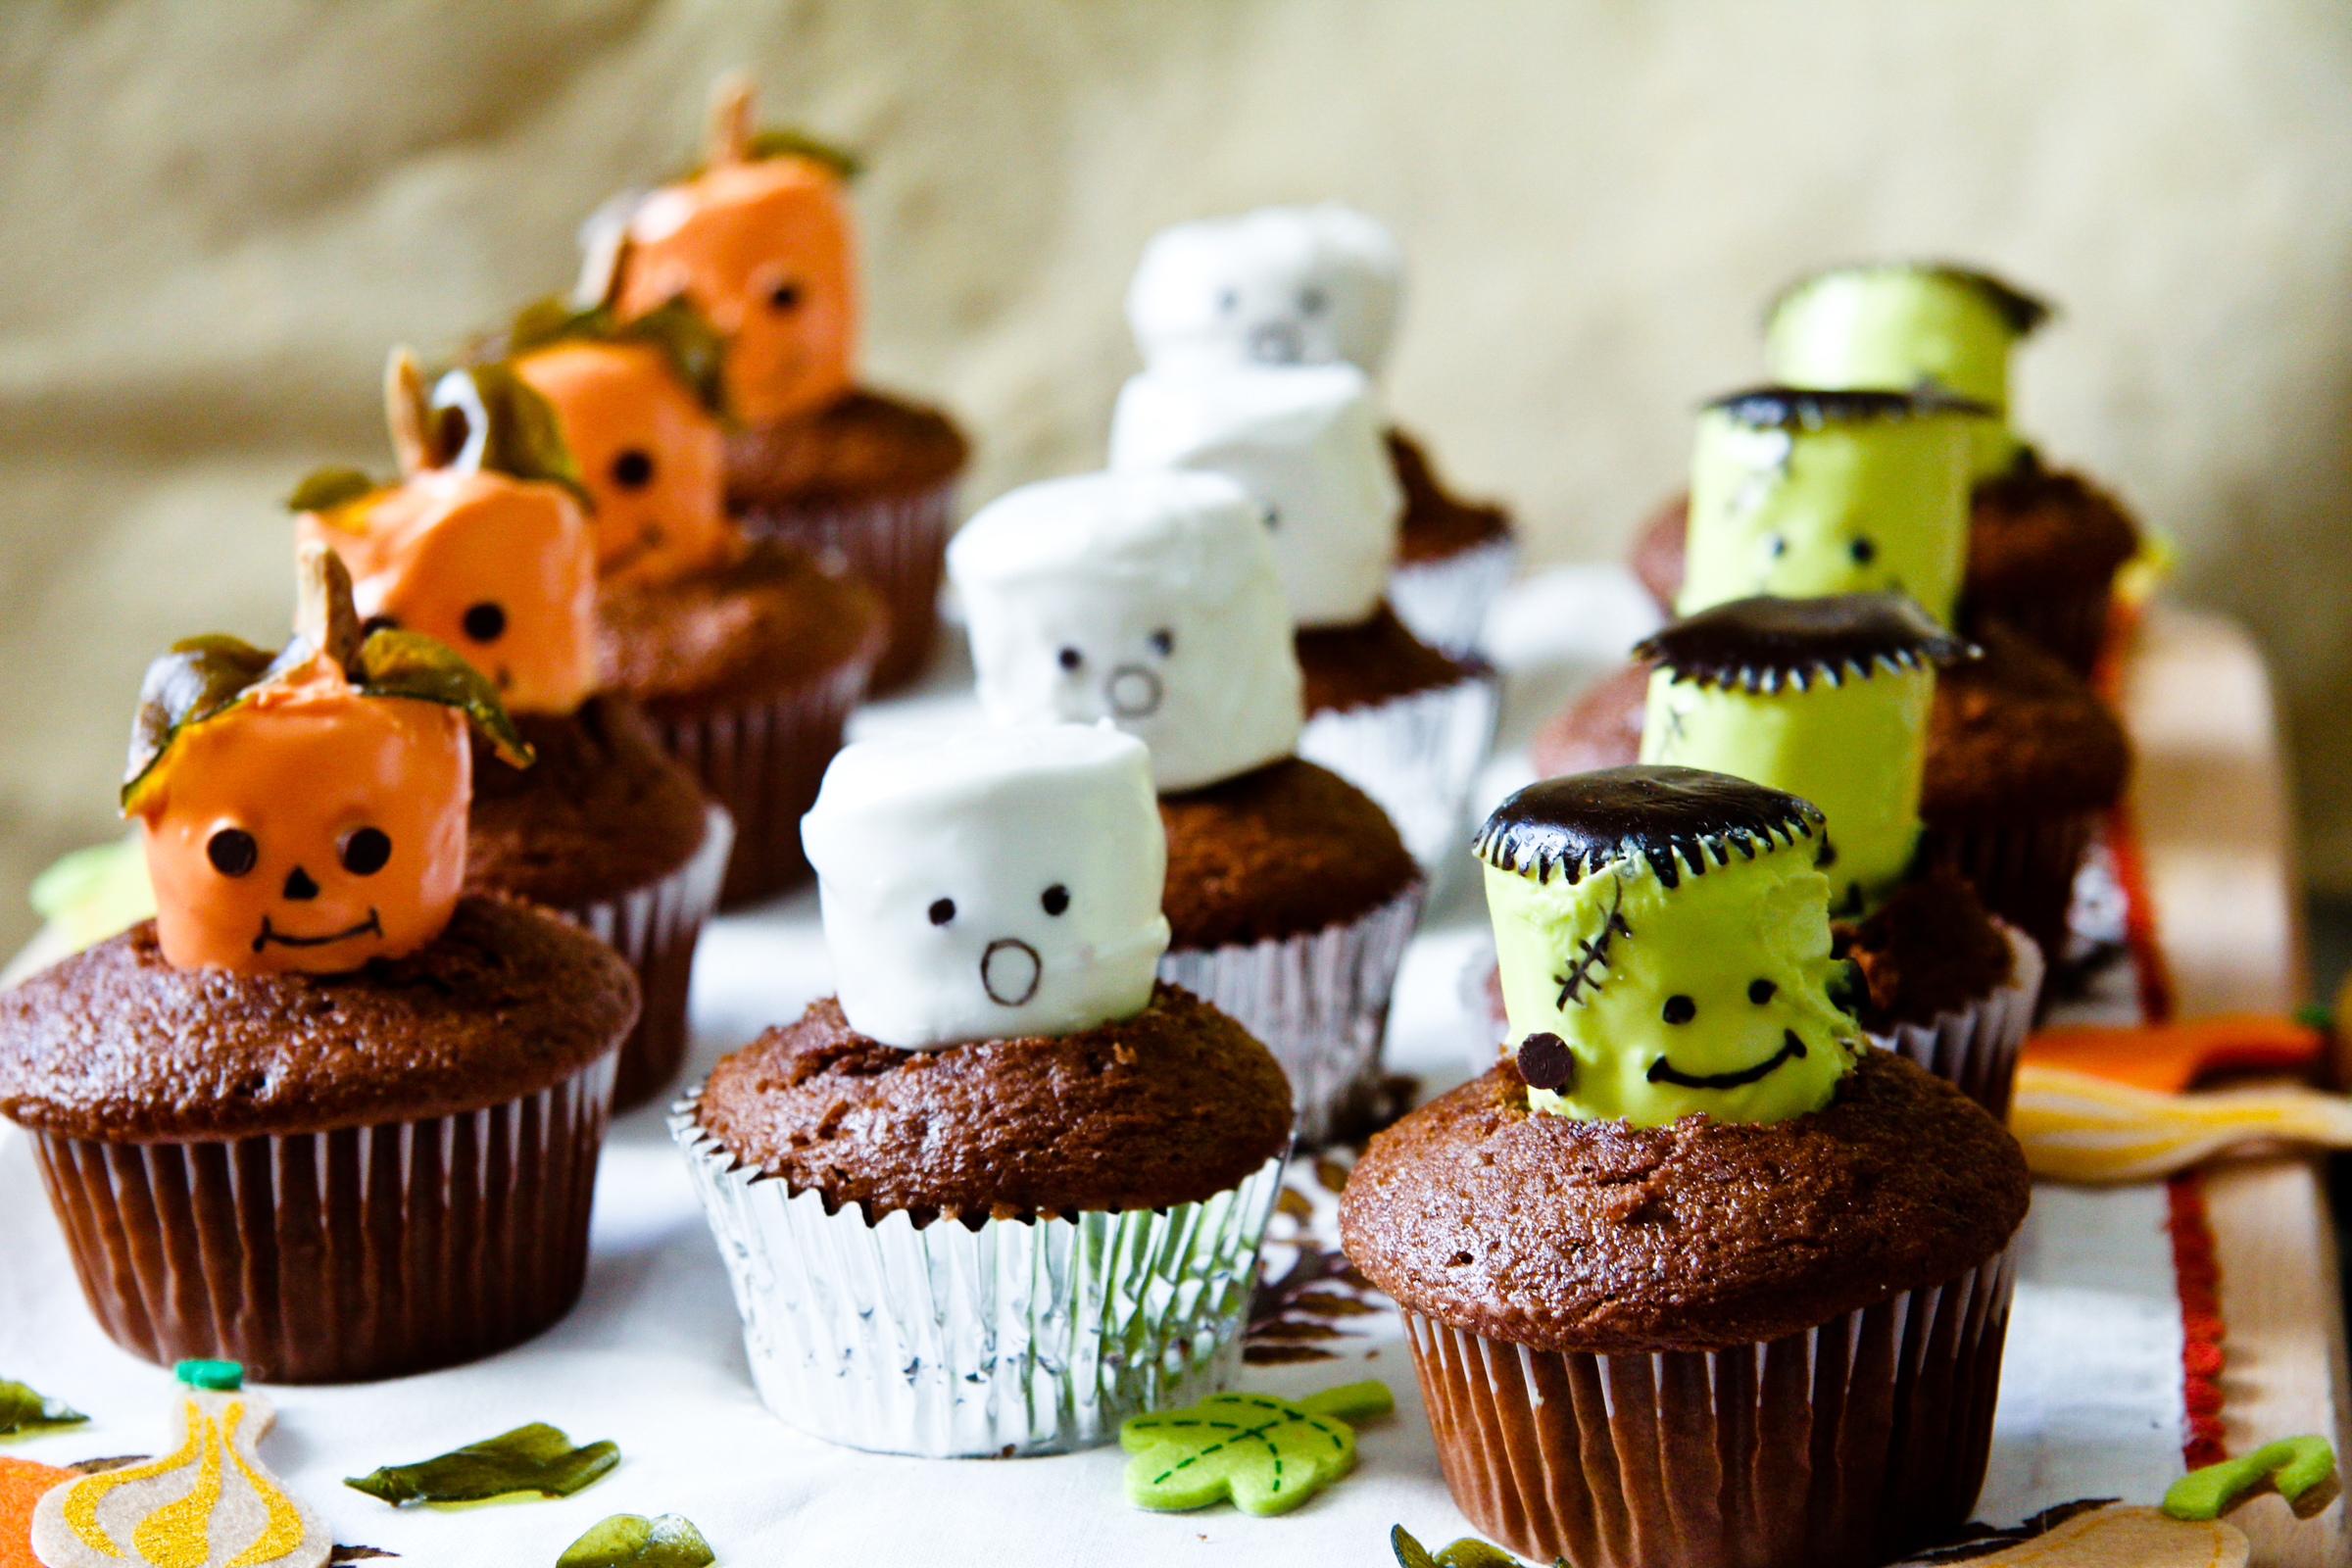 How to Make Halloween Cupcakes | ChefJulieYoon.com